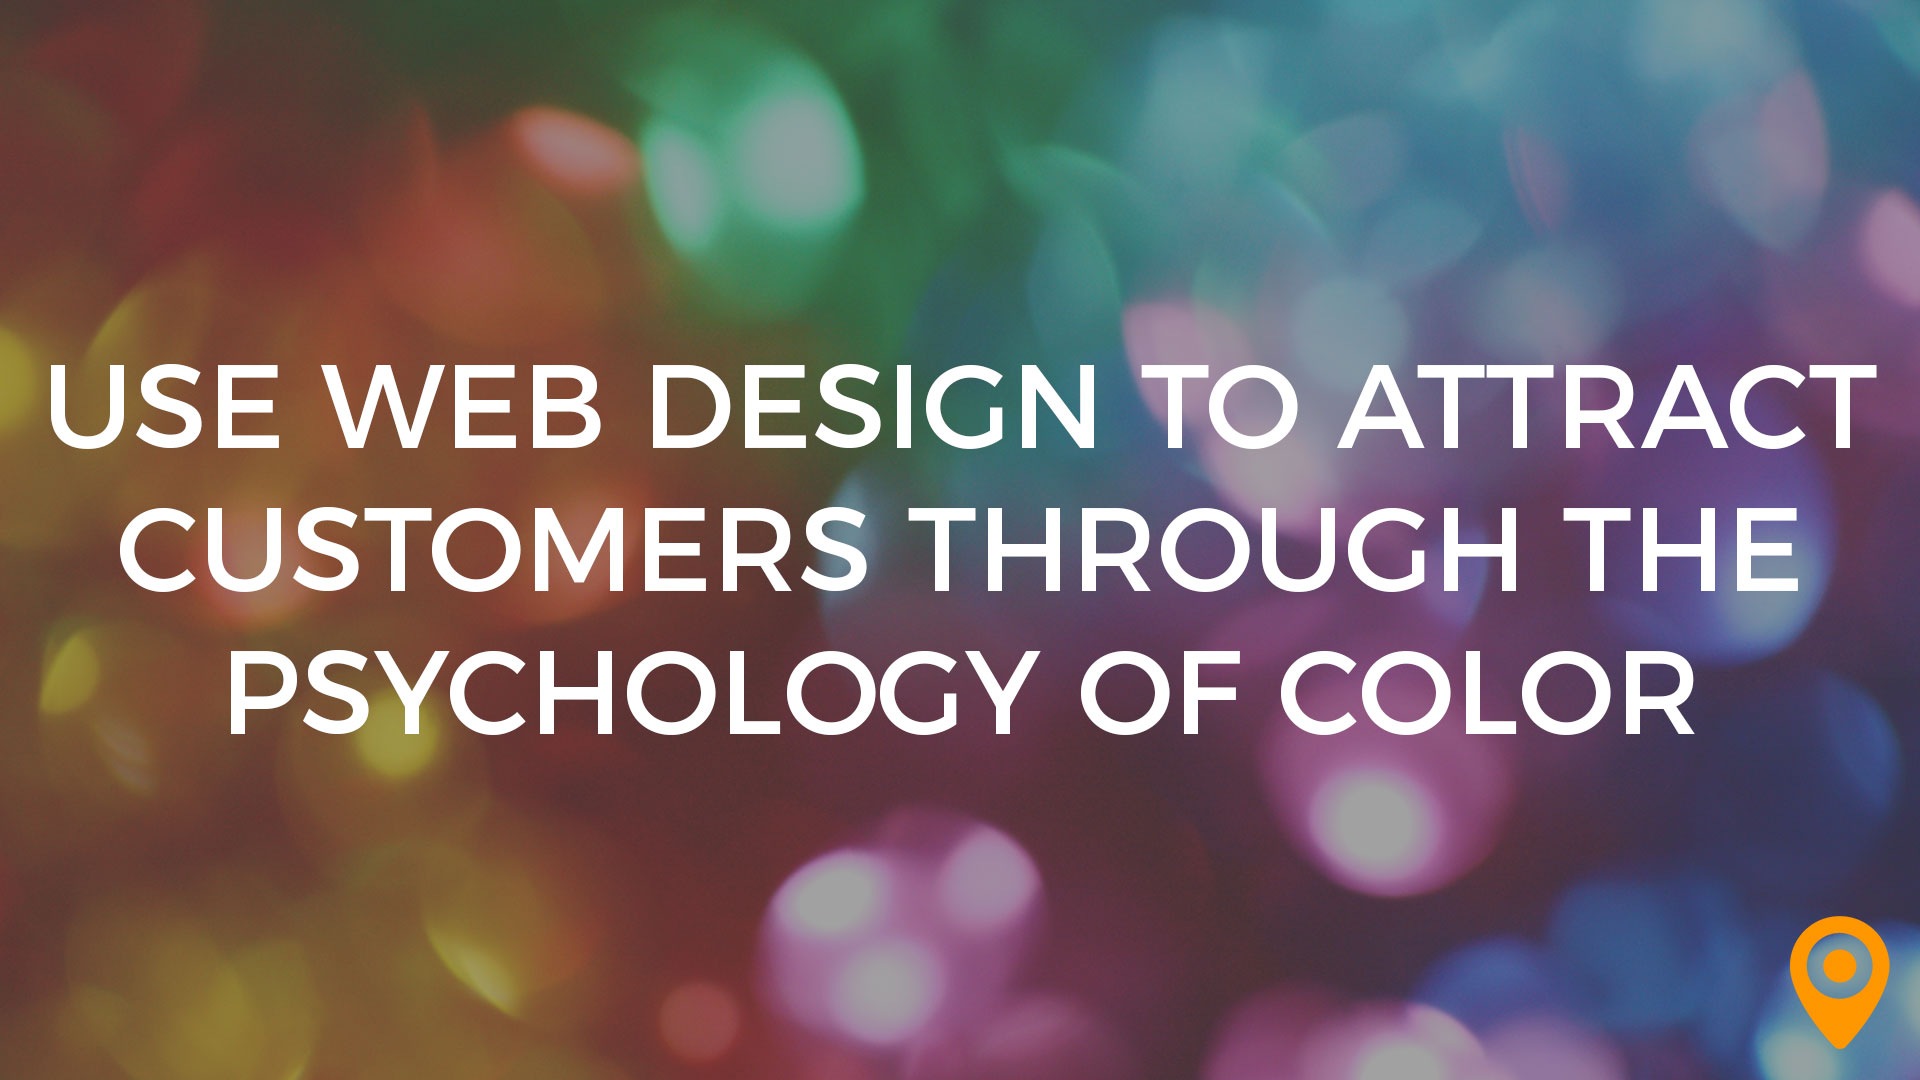 Web Design and the Psychology of Color